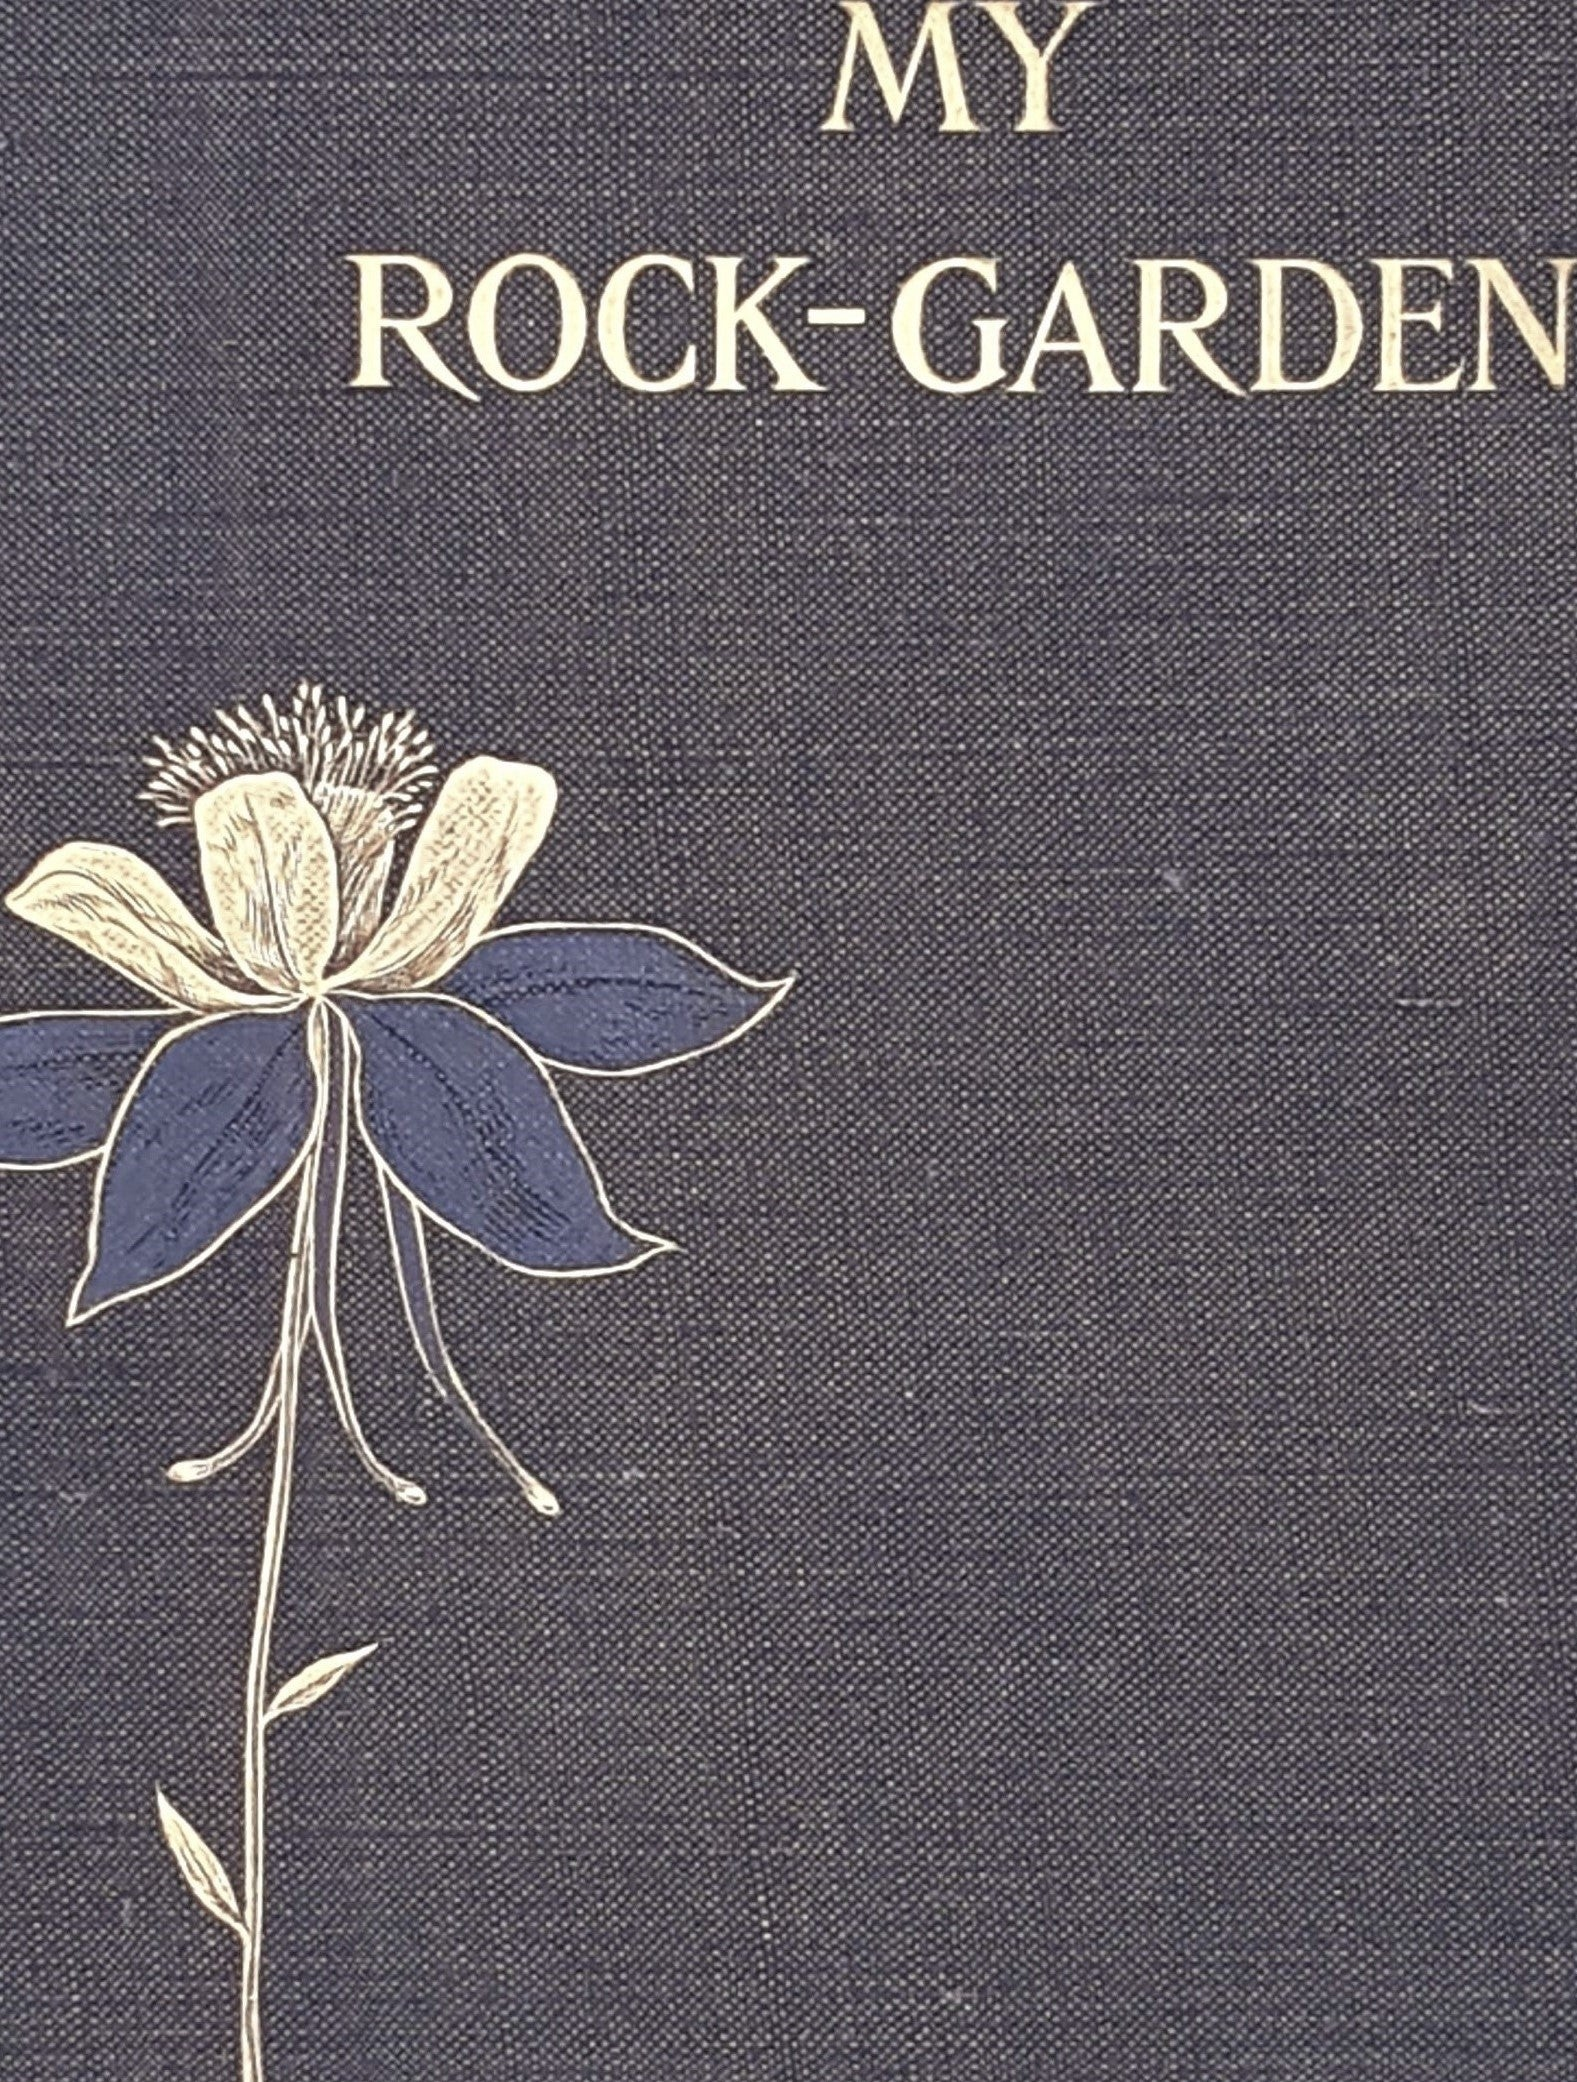 old-reference-decorative-classic-nature-thrift-black-my-rock-garden-patterned-reginald-farrer-plants-edward-anold-1908-books-antique-vintage-country-house-library-